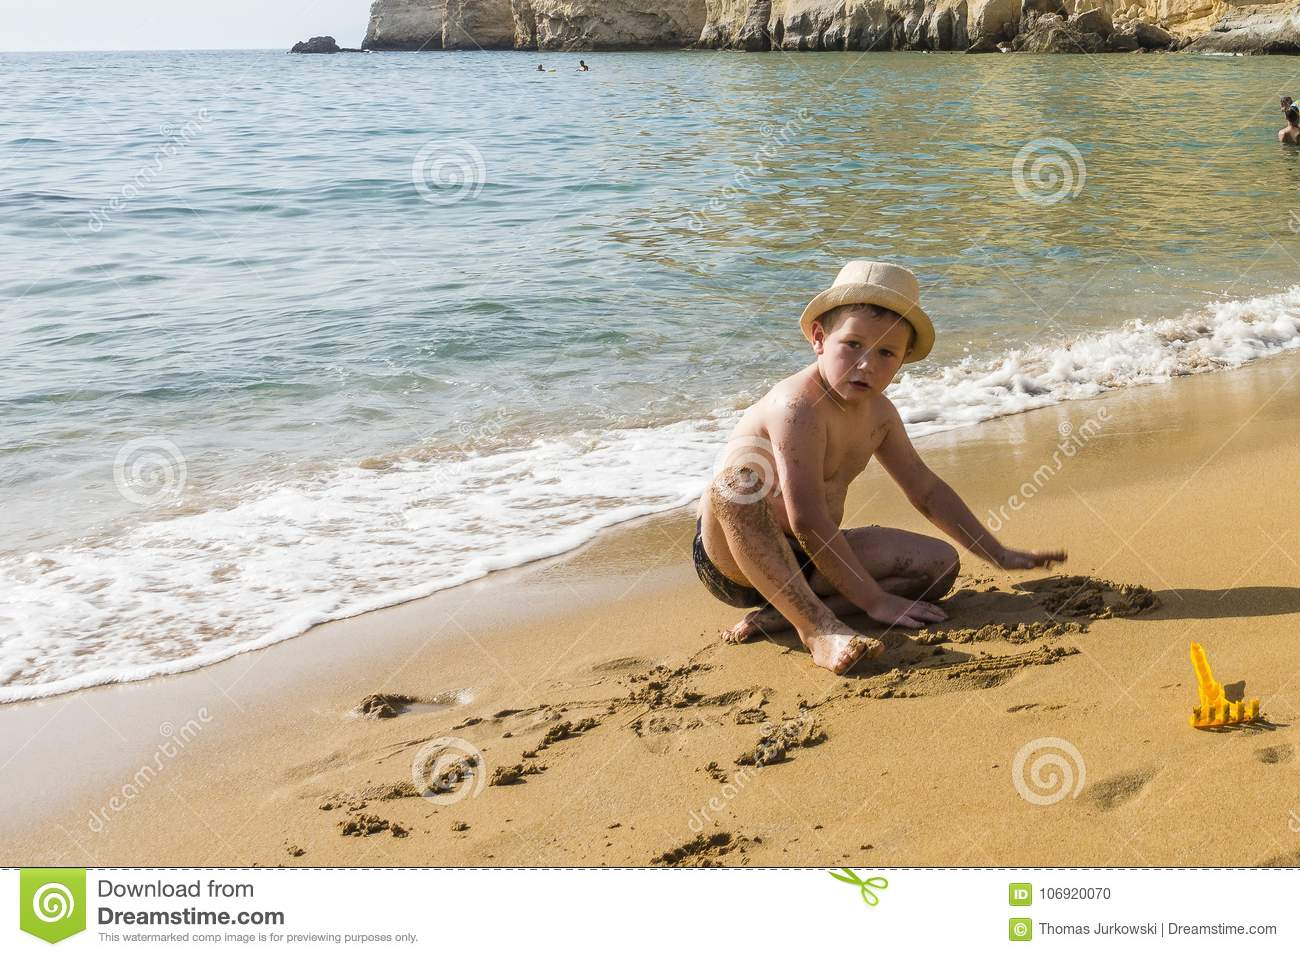 best of That Beach nudist